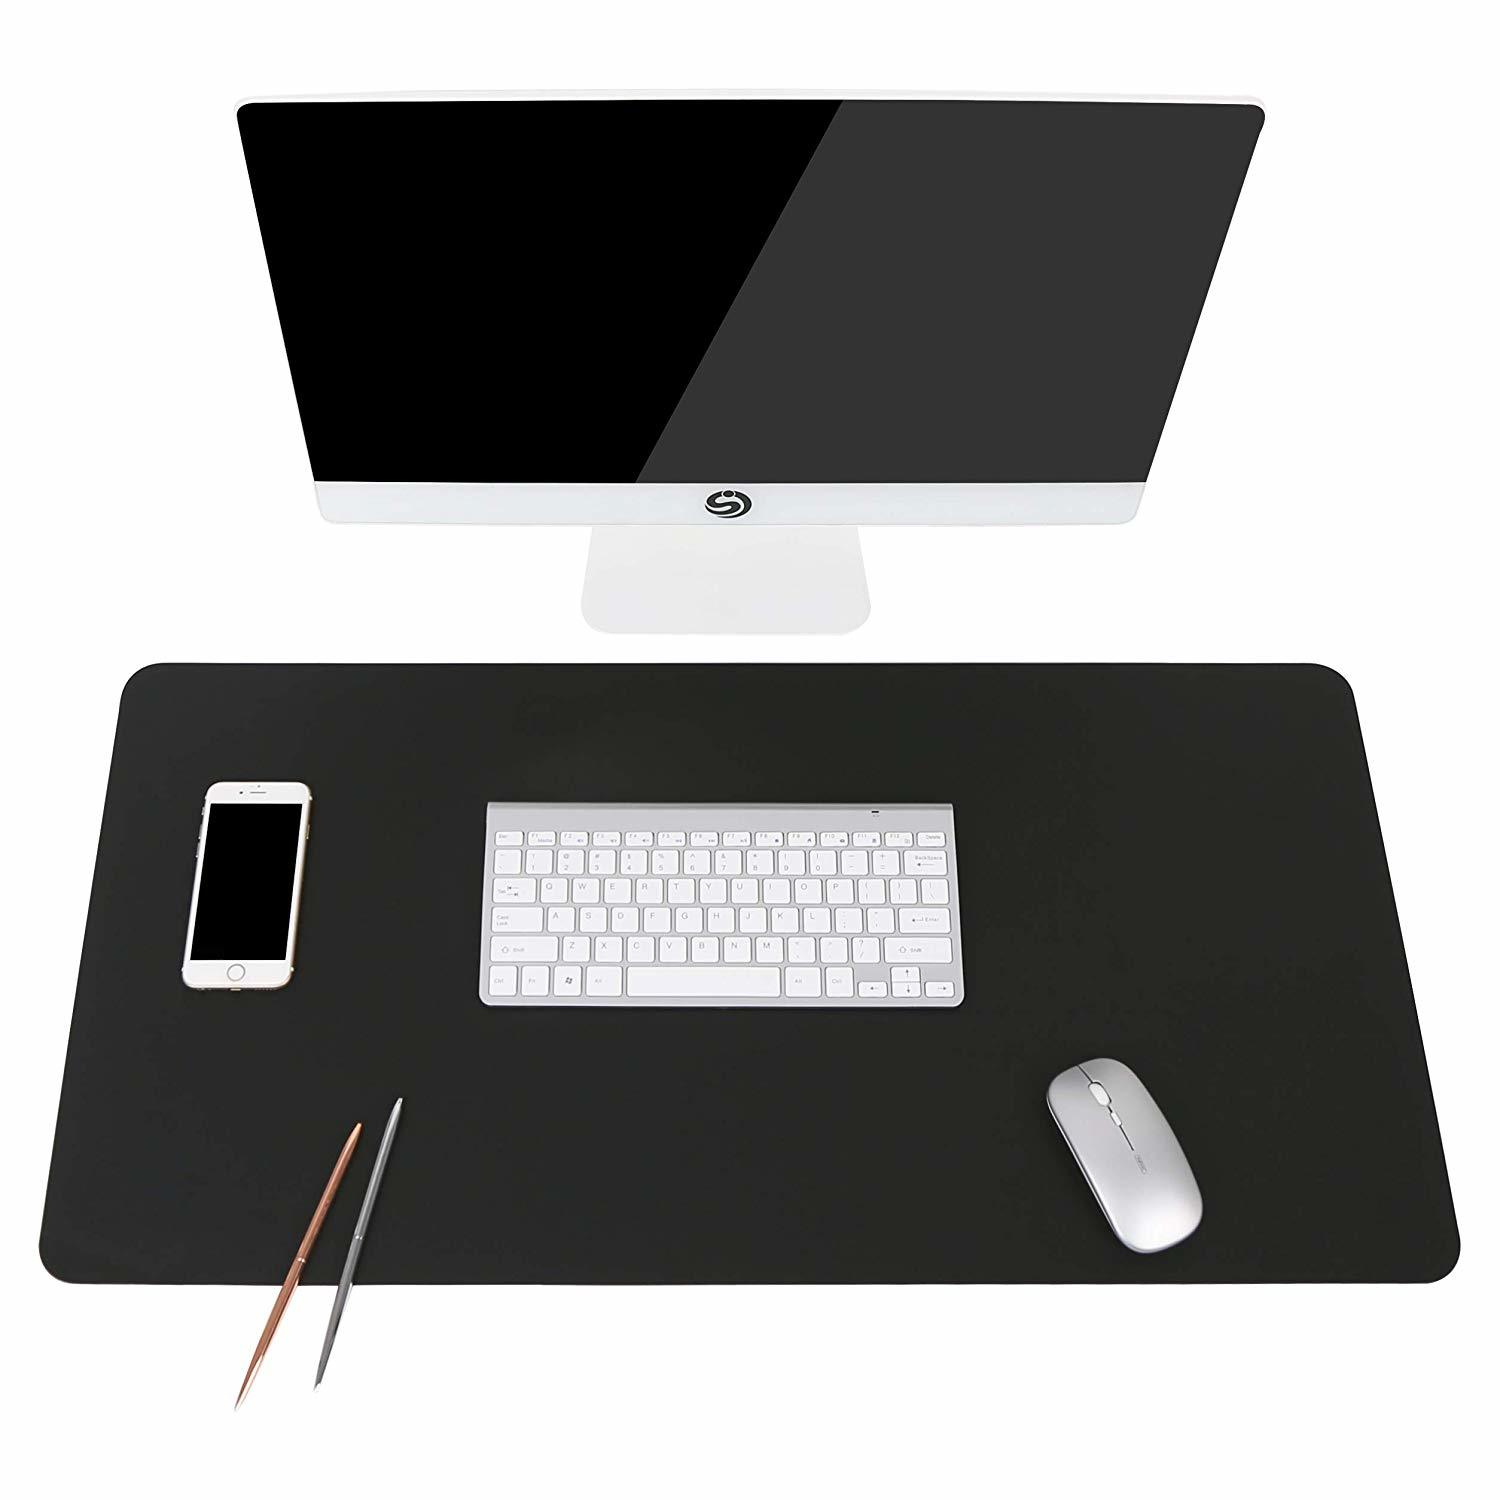 Custom Design Waterproof Sublimation Roll Rubber Material Extend Large Gaming Mouse Pad